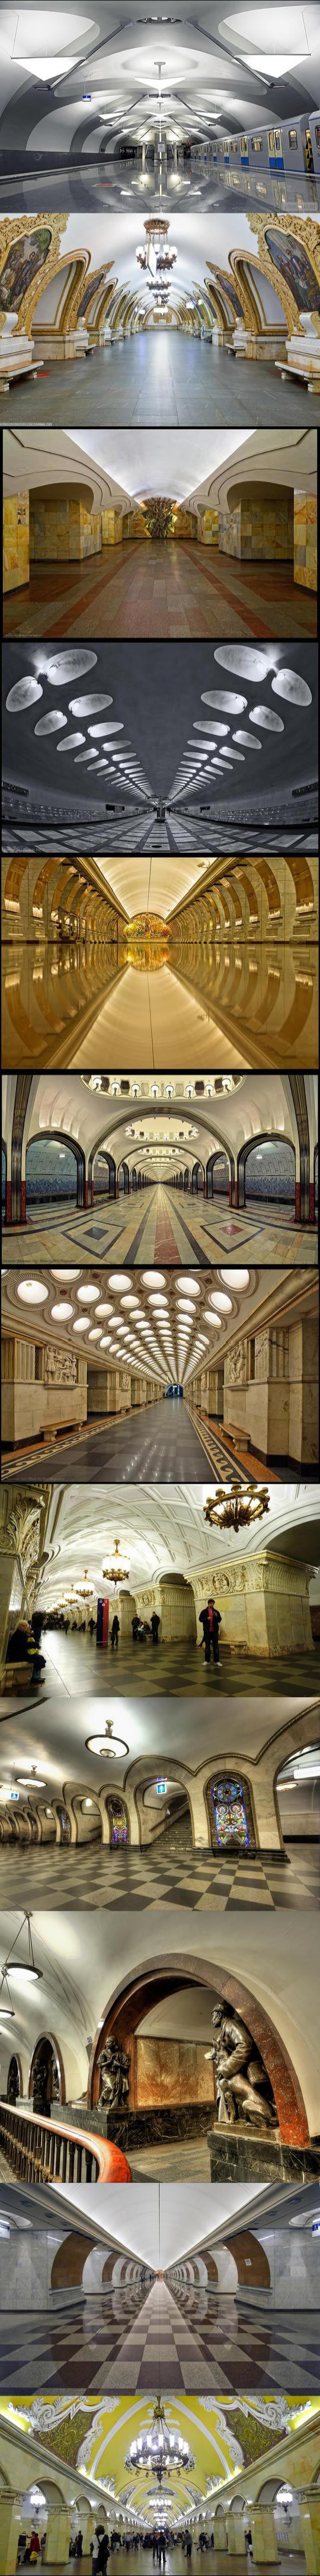 Moscow Metro Stations